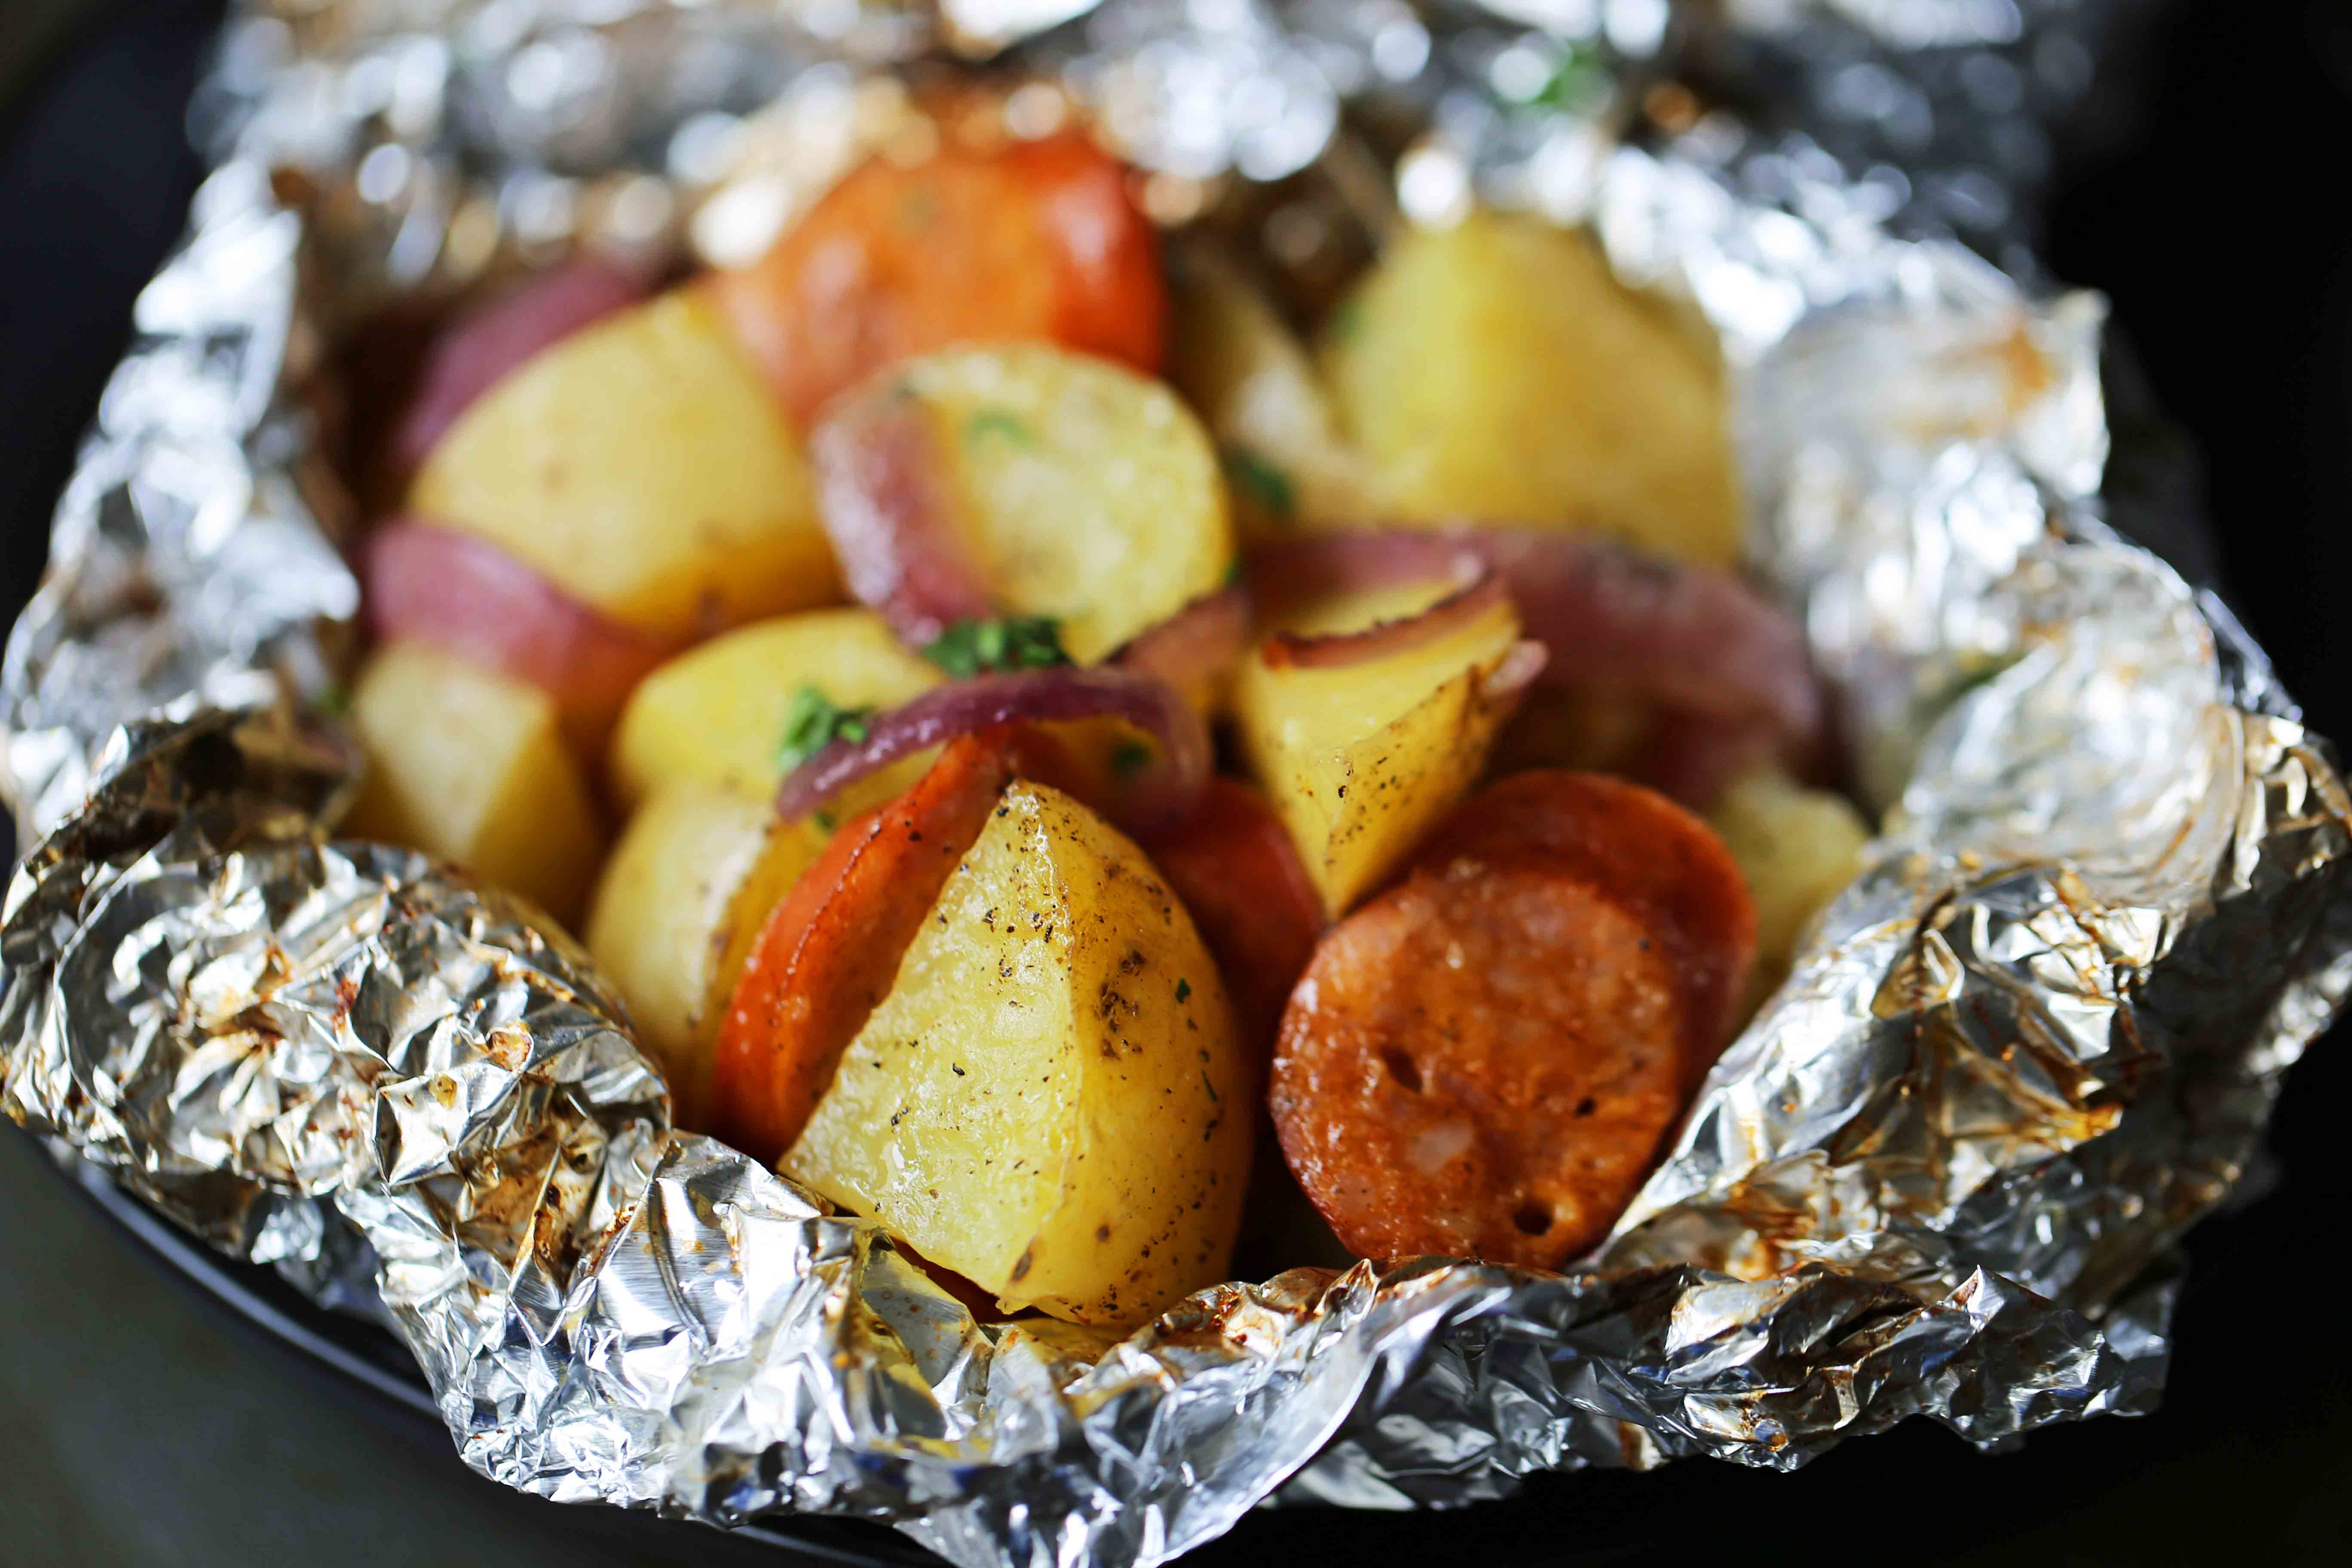 Sausage Potato Foil Packets The modern tin-foil dinner with hardwood smoked sausage and creamy gold potatoes. An easy and flavor-packed dinner. Foil packets cooked in the oven. #tinfoildinners #foilpackets #sausagepotatoes #sausagepotatofoilpackets #ovenfoilpackets